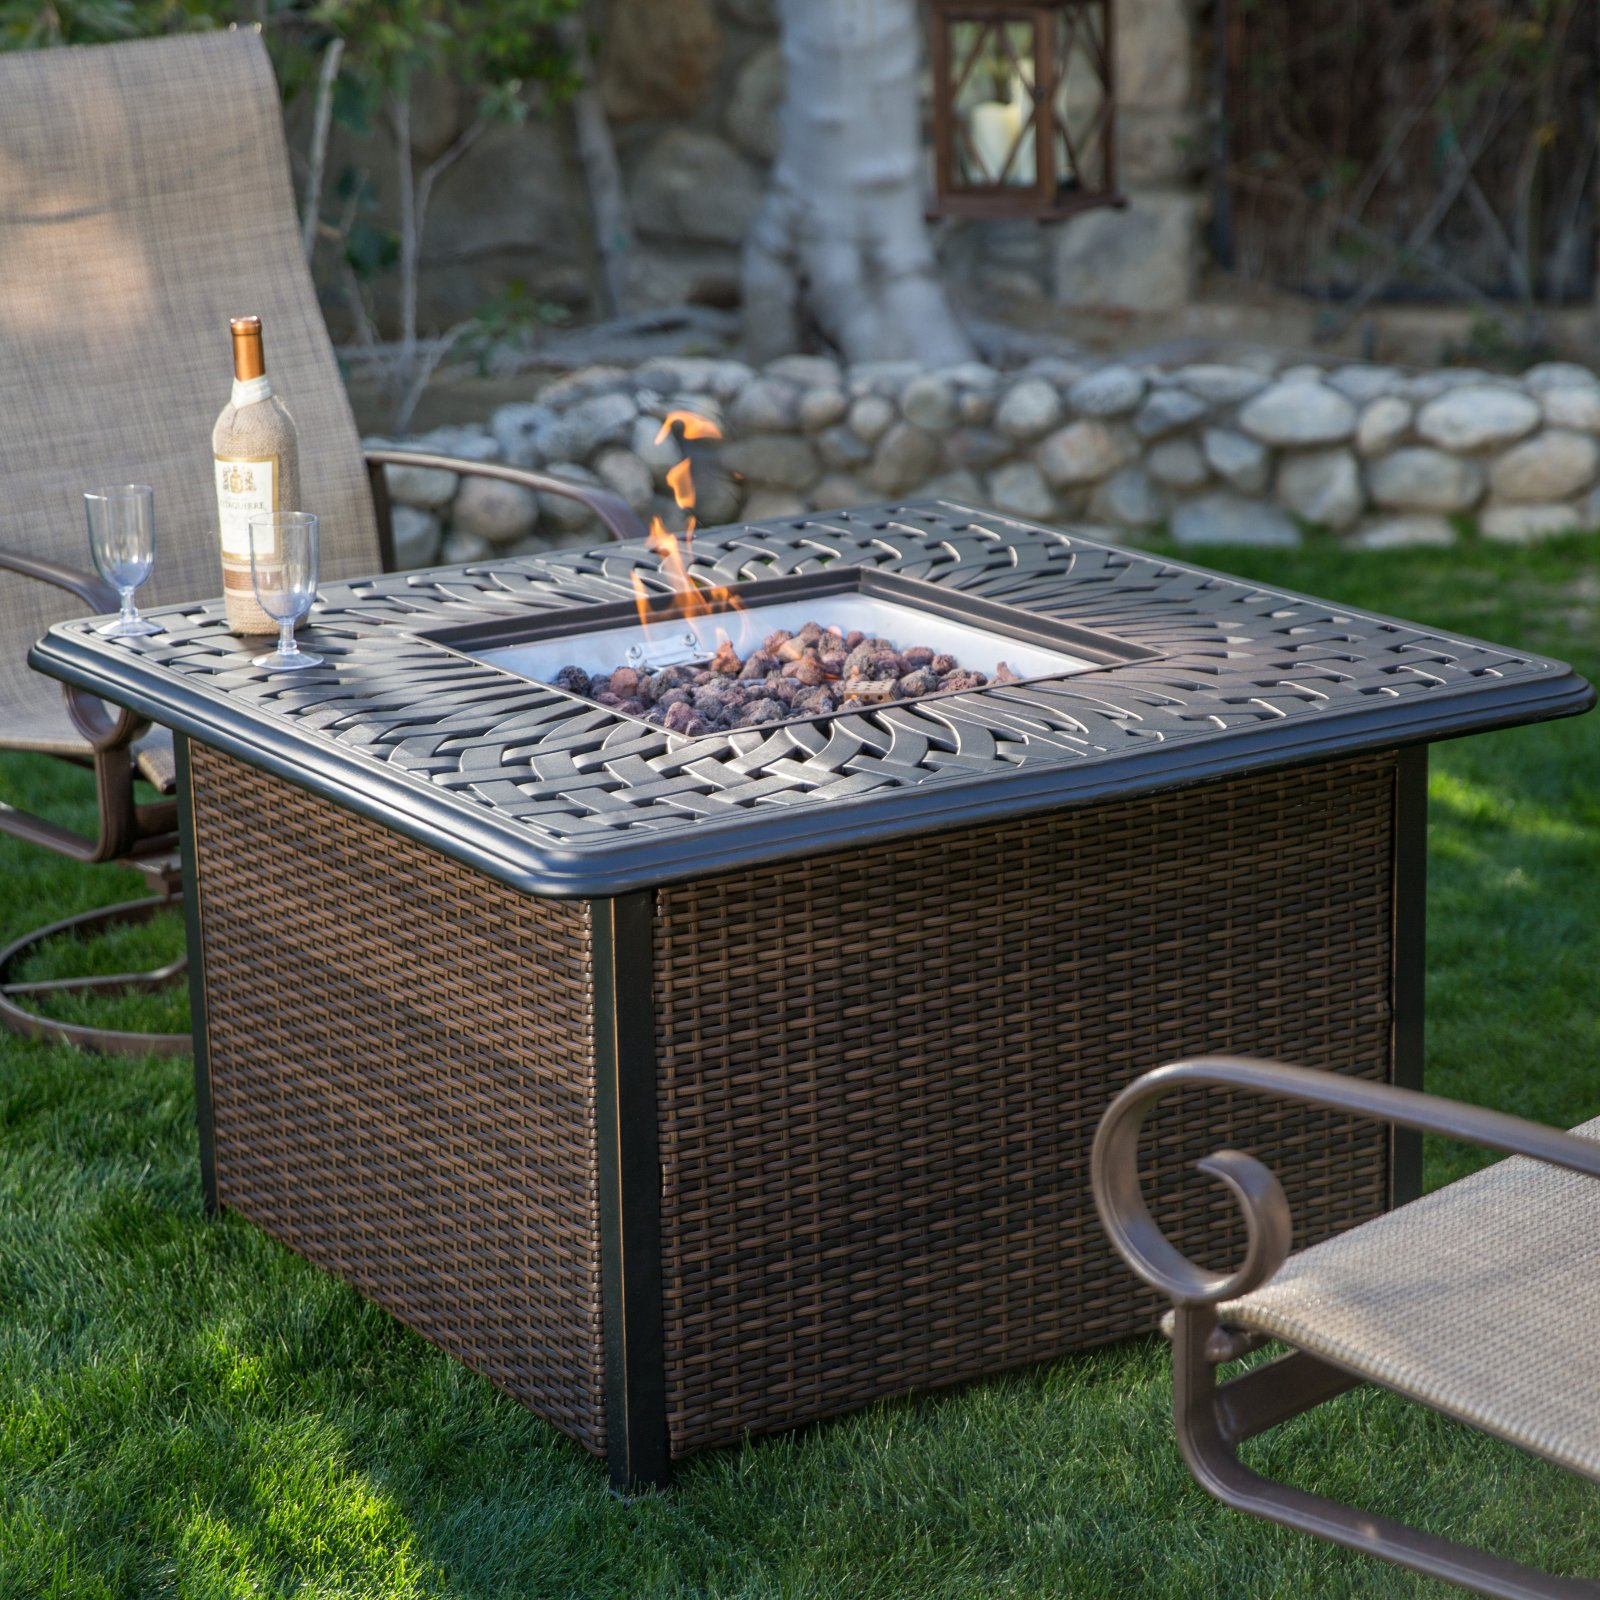 Belham Living Florentine 42 in. Square Propane Firepit Table with Wicker Base by